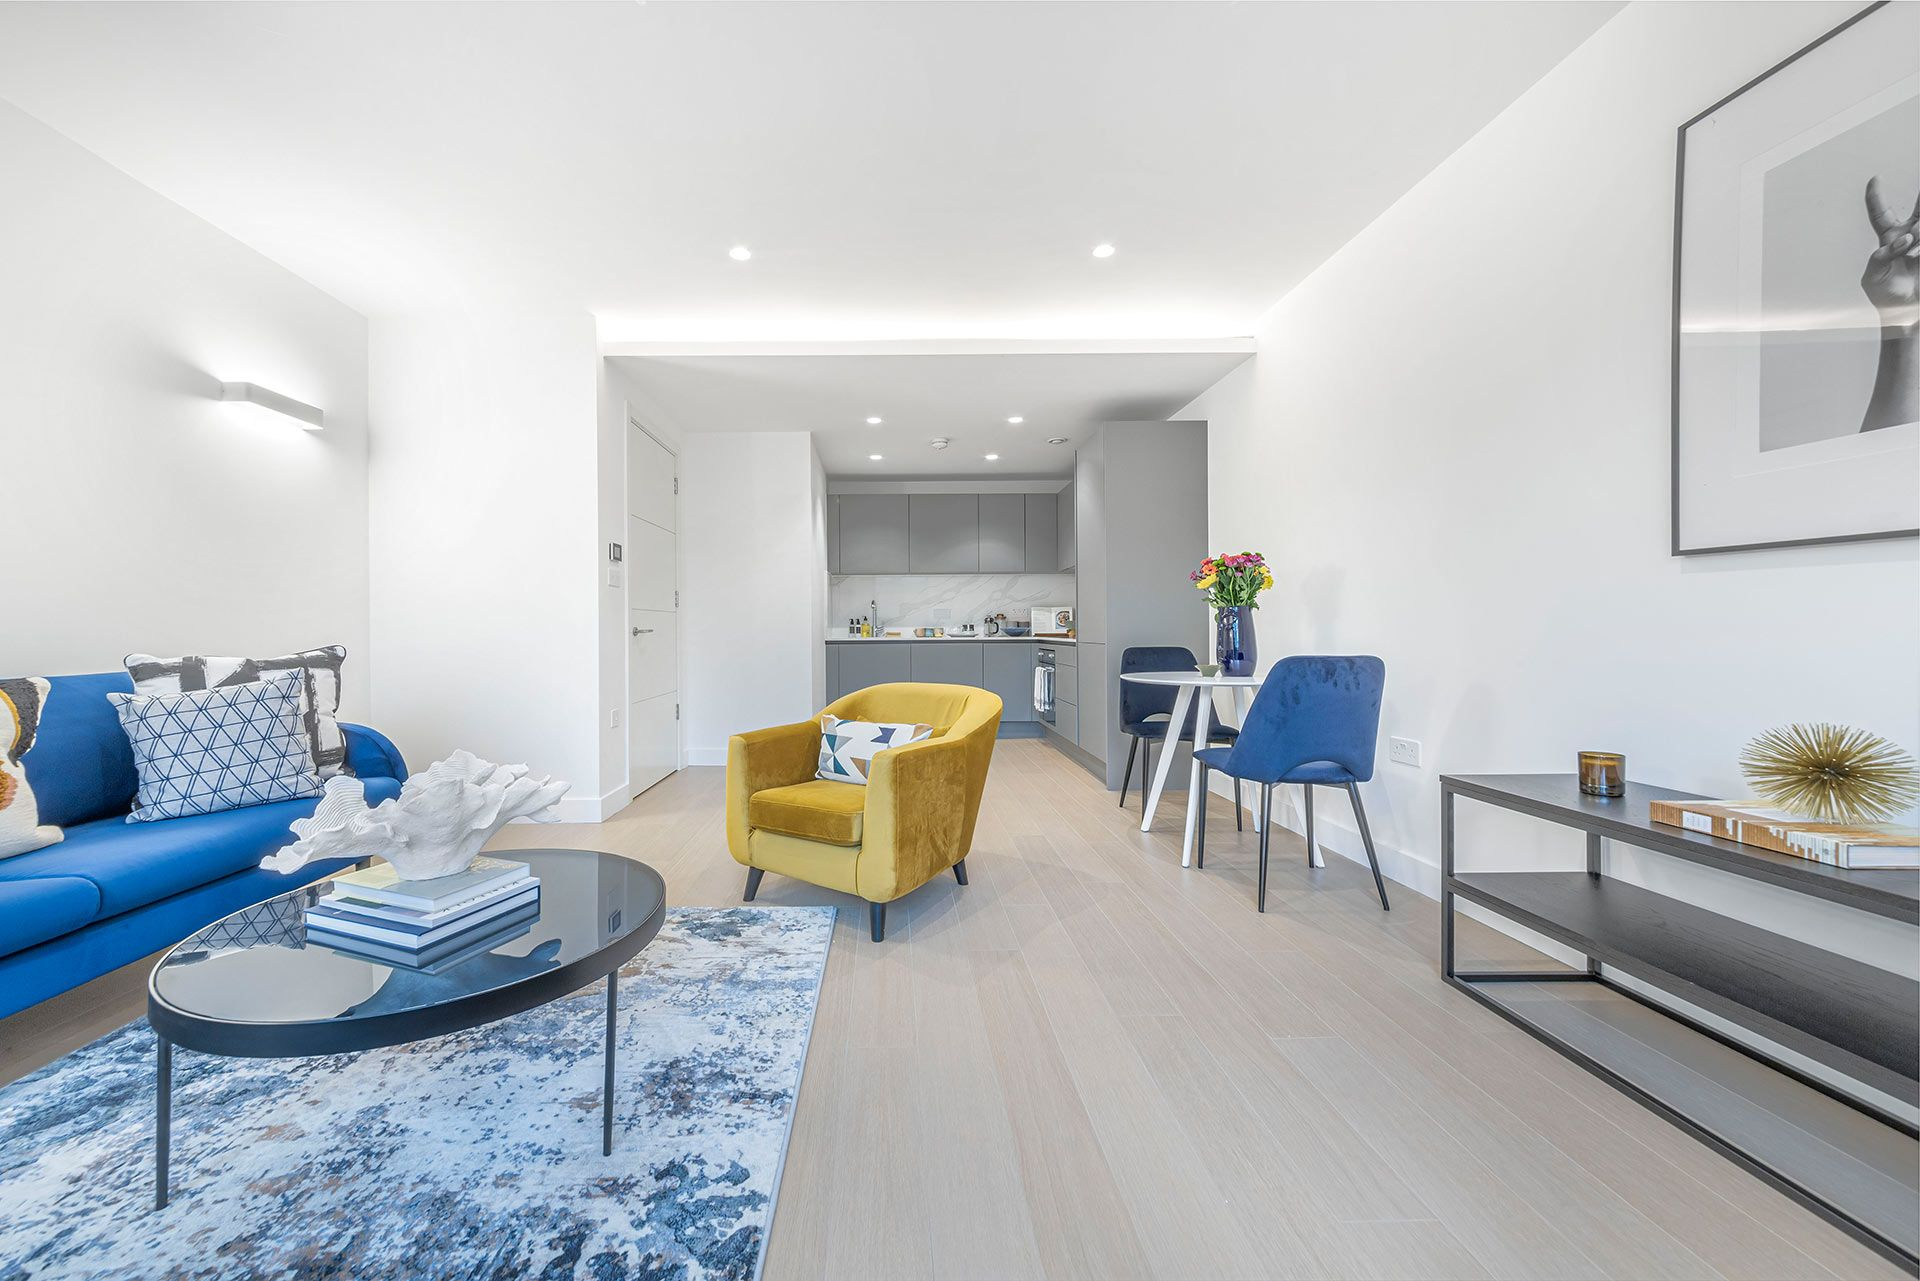 1 Bedroom apartment to rent in London SKI-FH-0044